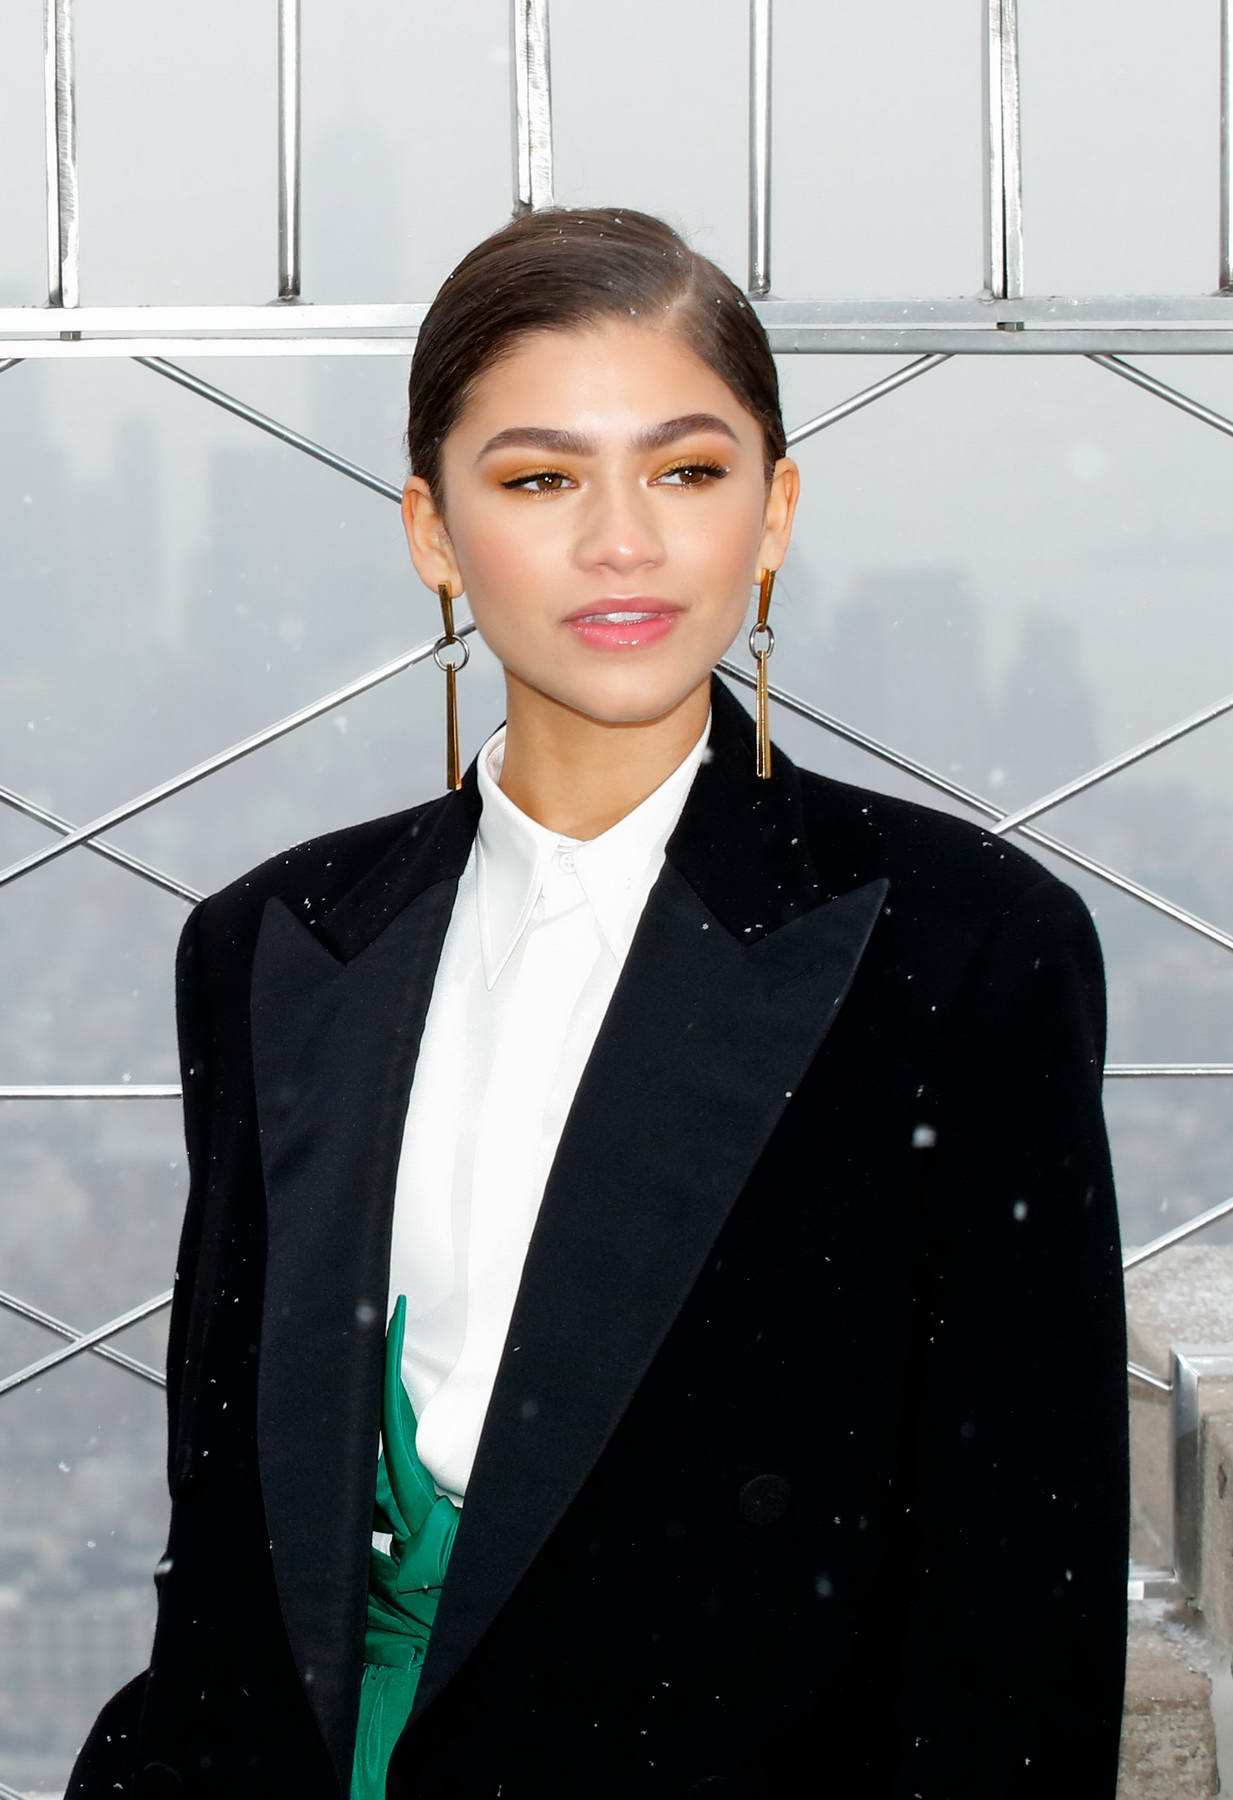 zendaya coleman and zac efron at the empire state building ...